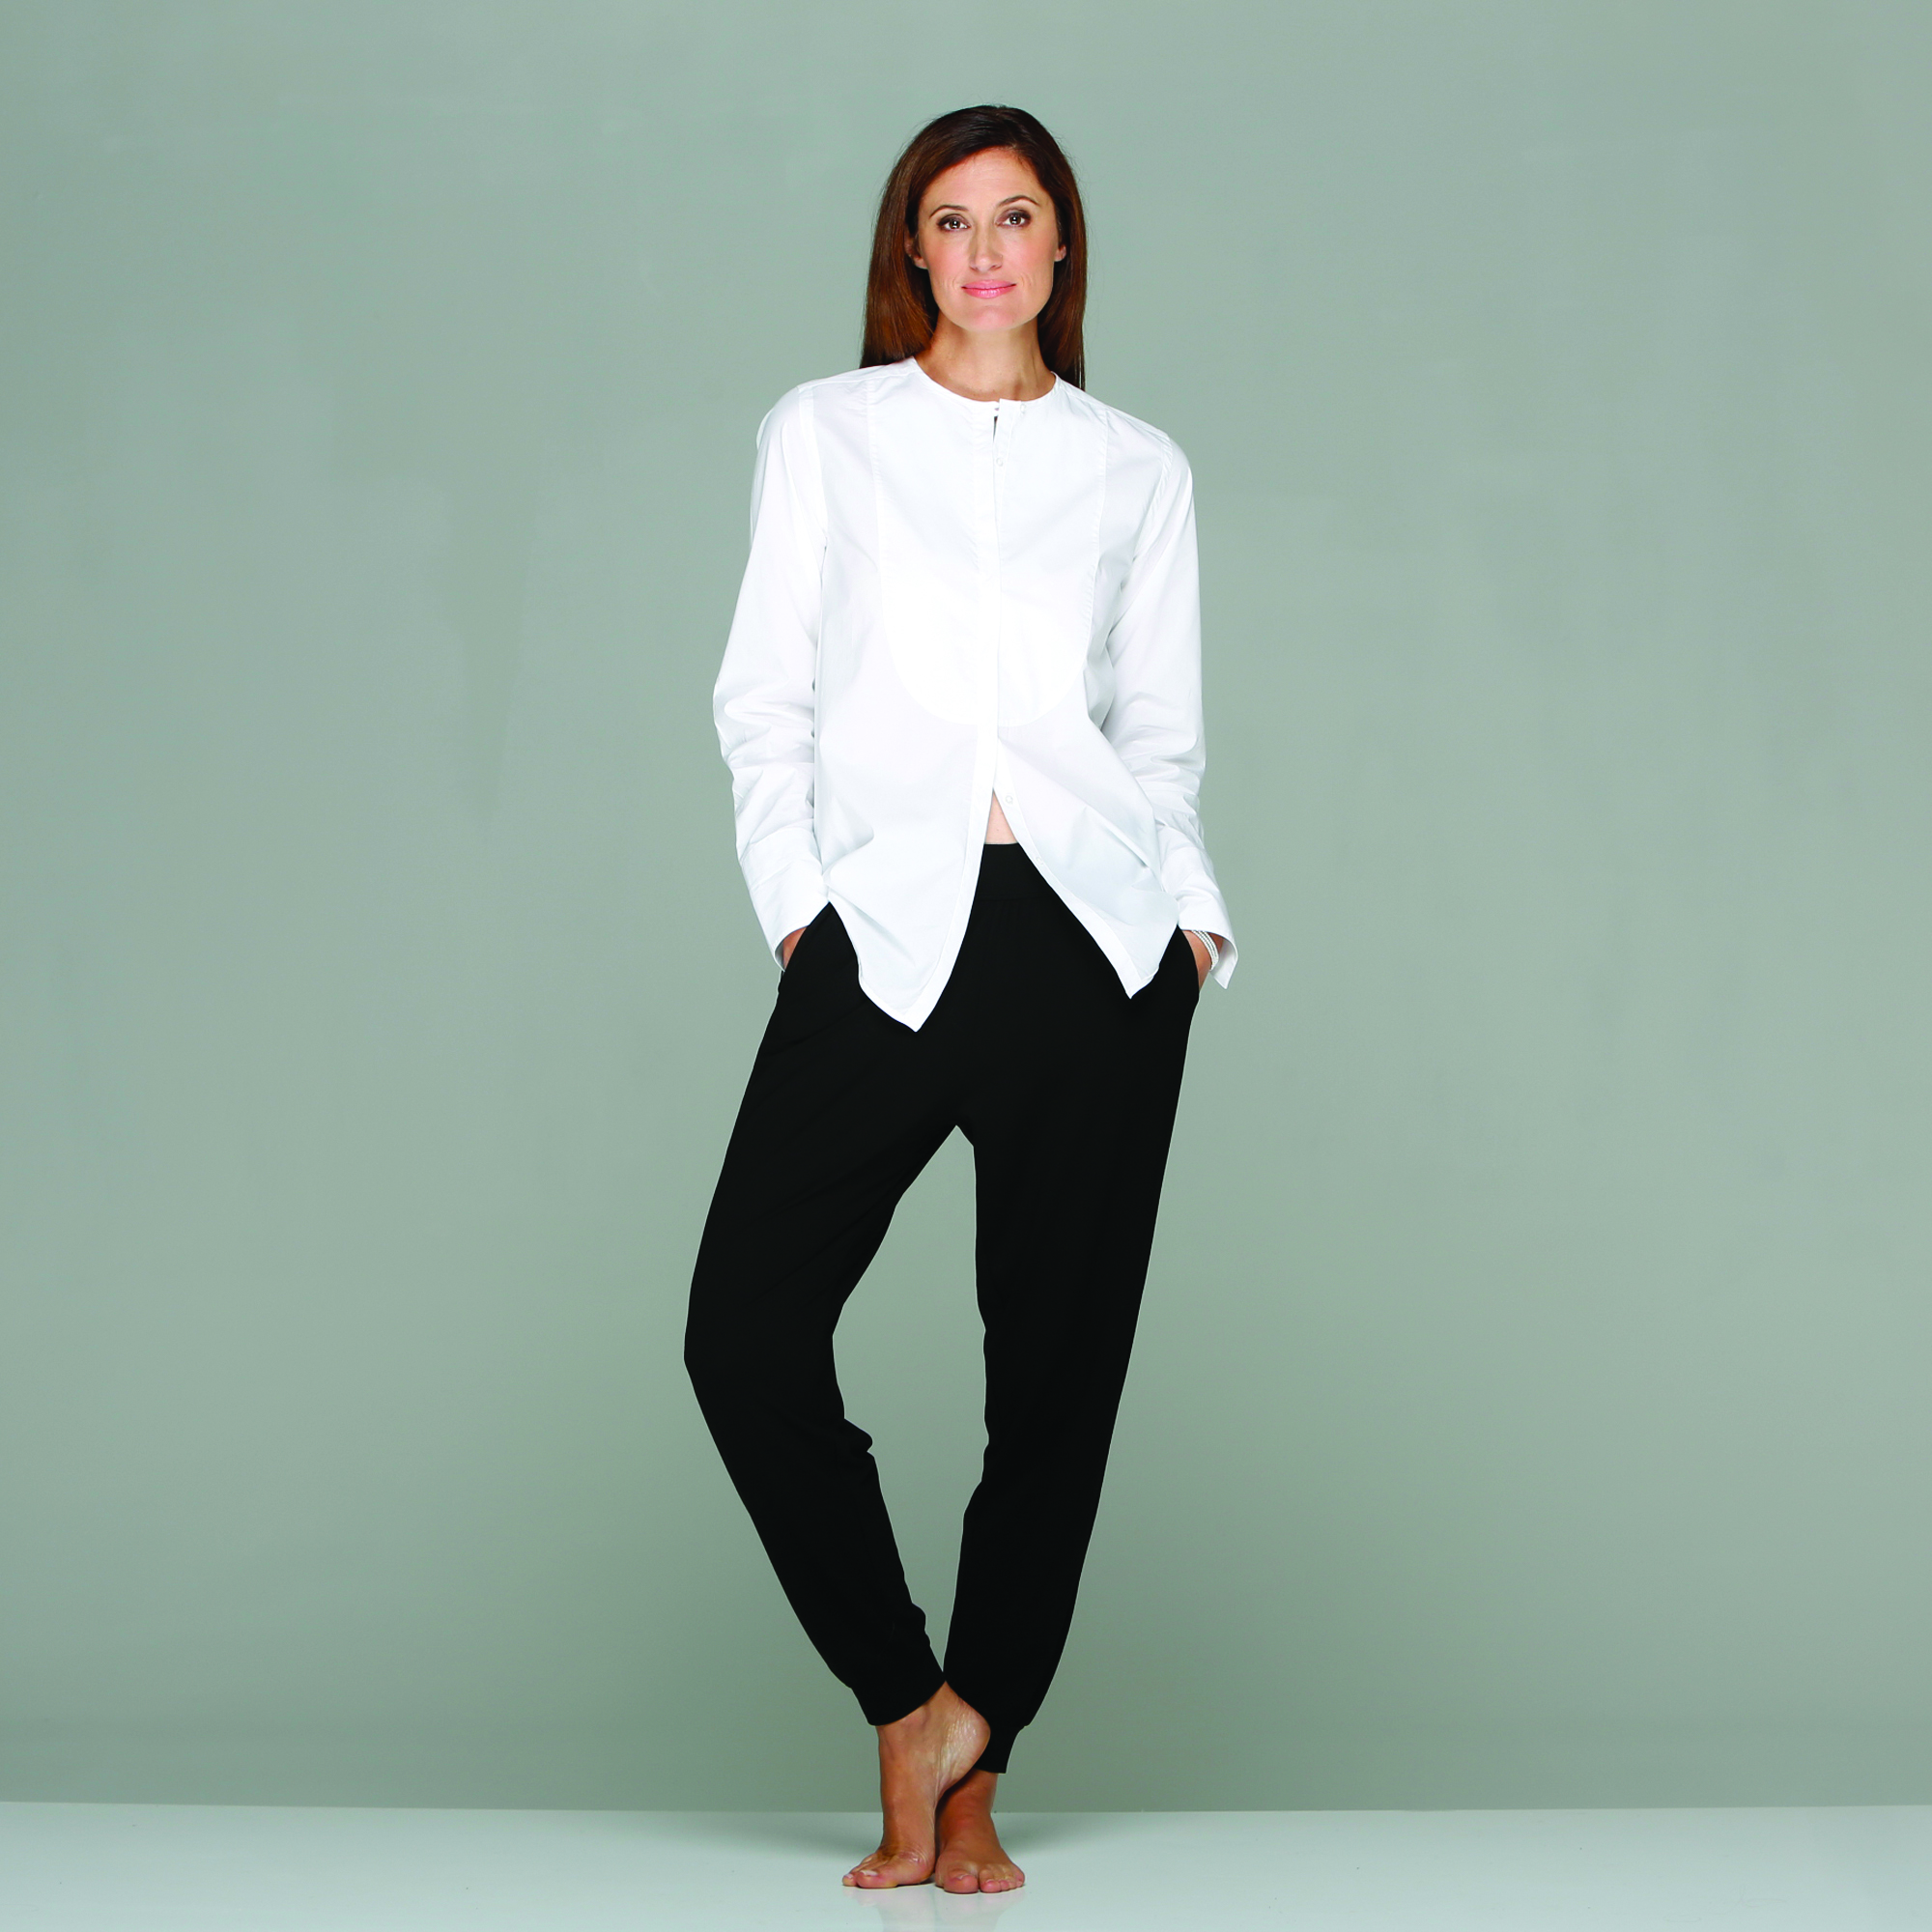 Rae feather unveils her debut aw13 online womenswear for Crisp white cotton shirt